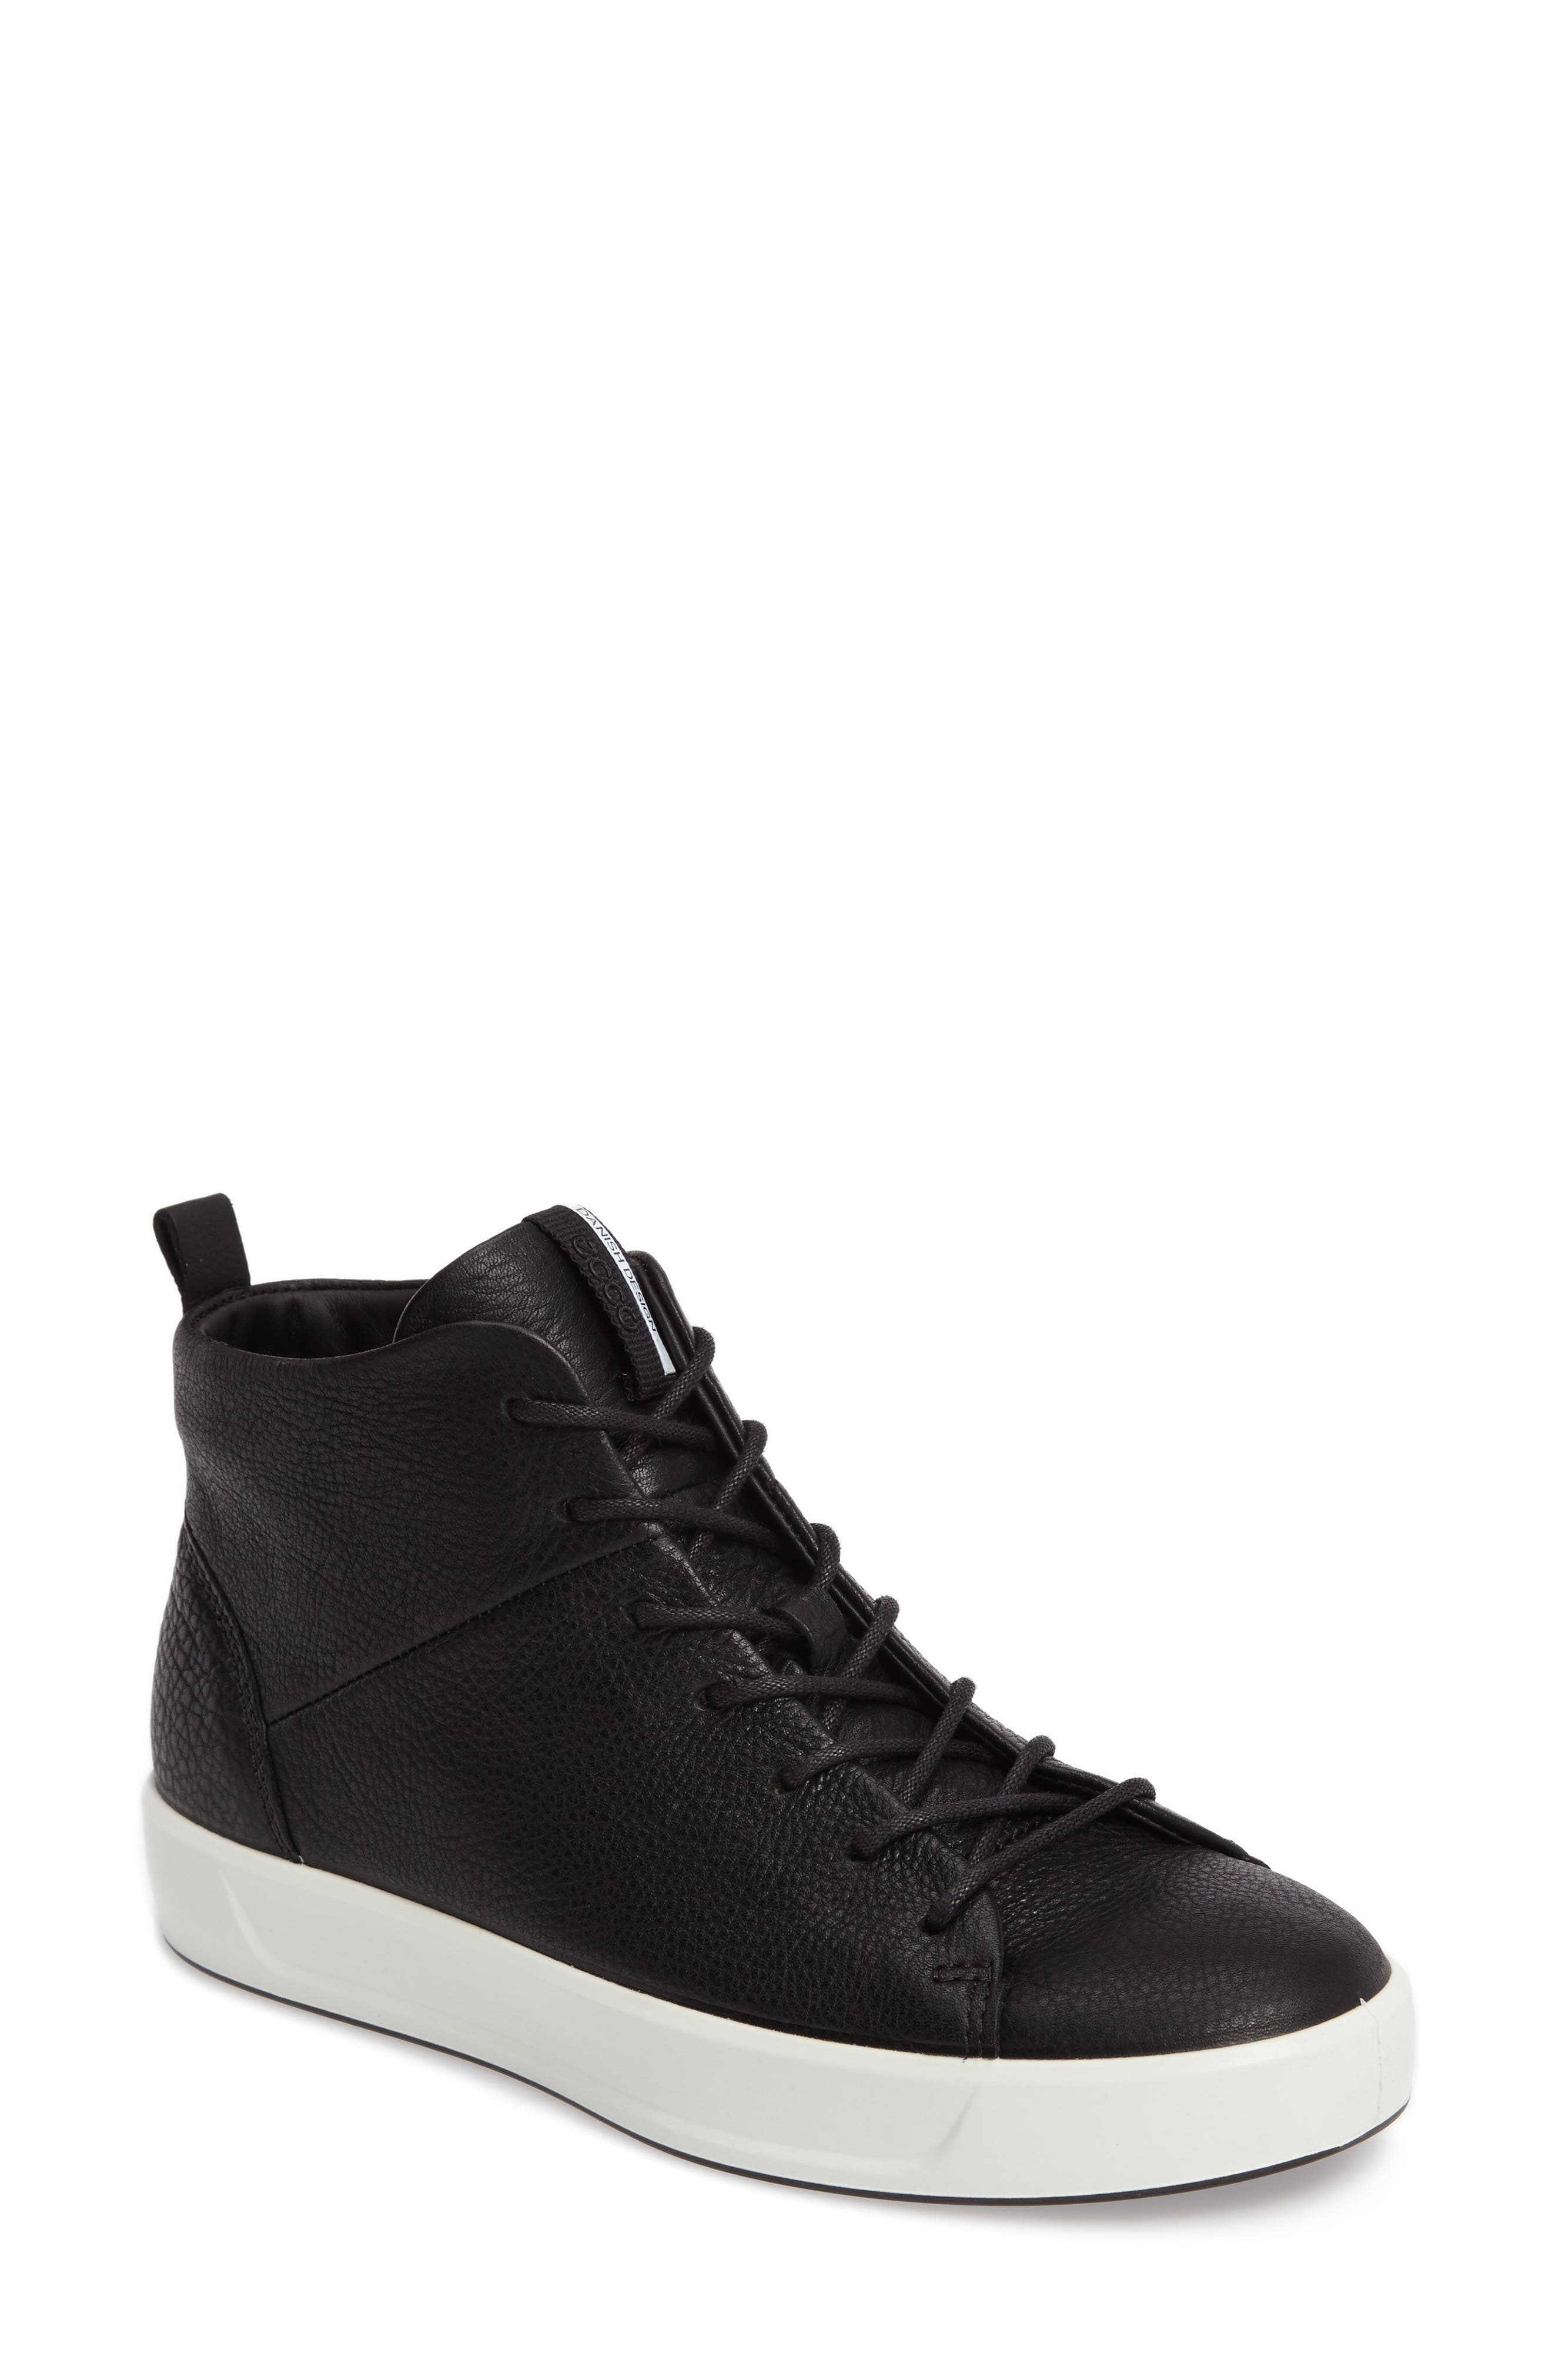 Soft 8 High Top Sneaker,                         Main,                         color, Black Leather